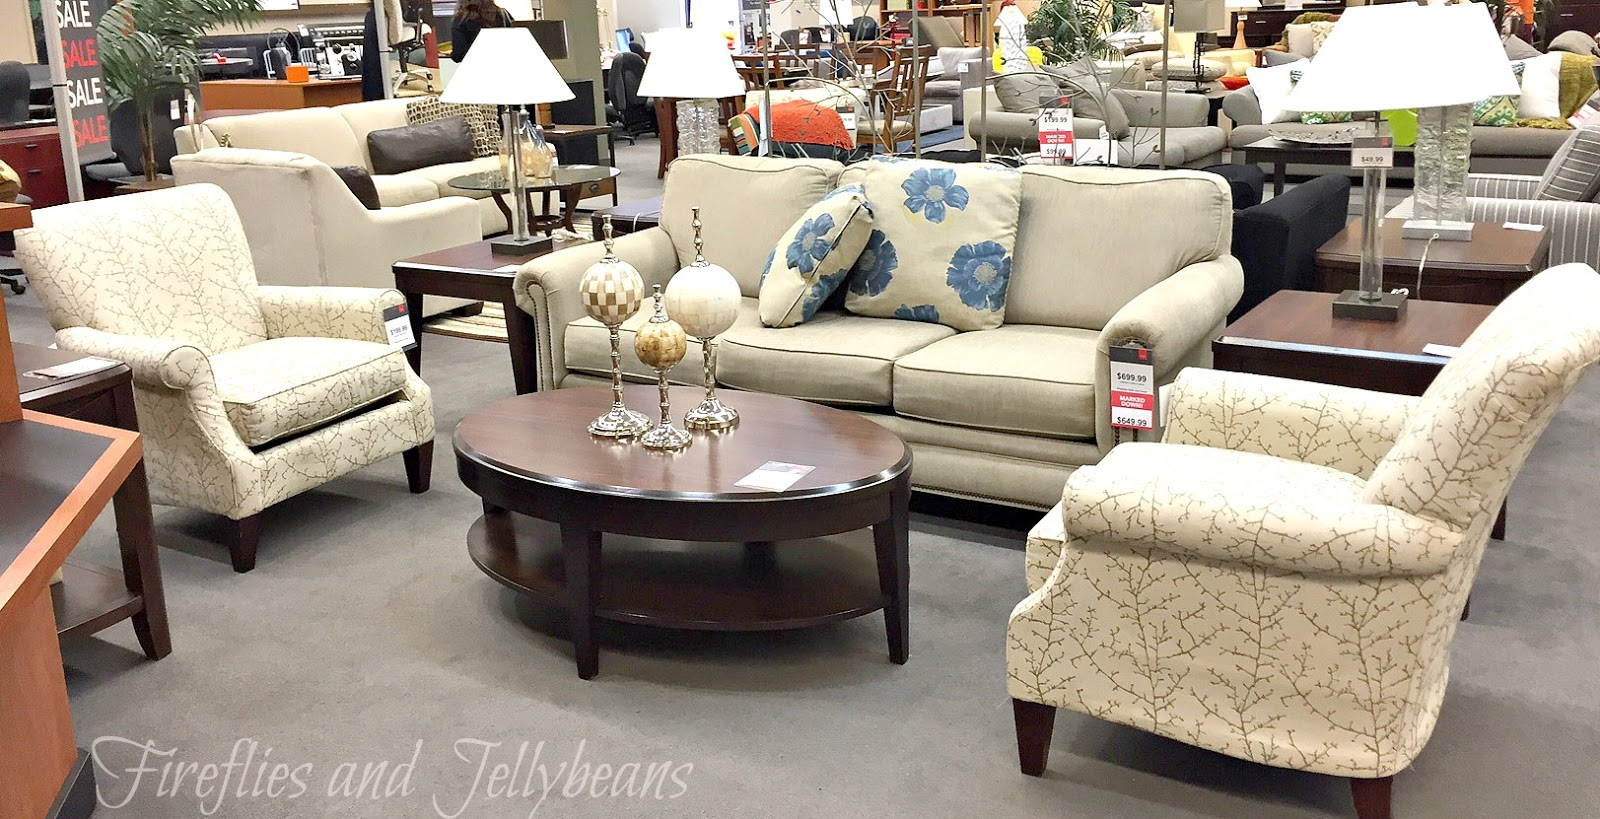 Fireflies and jellybeans for Cort furniture clearance